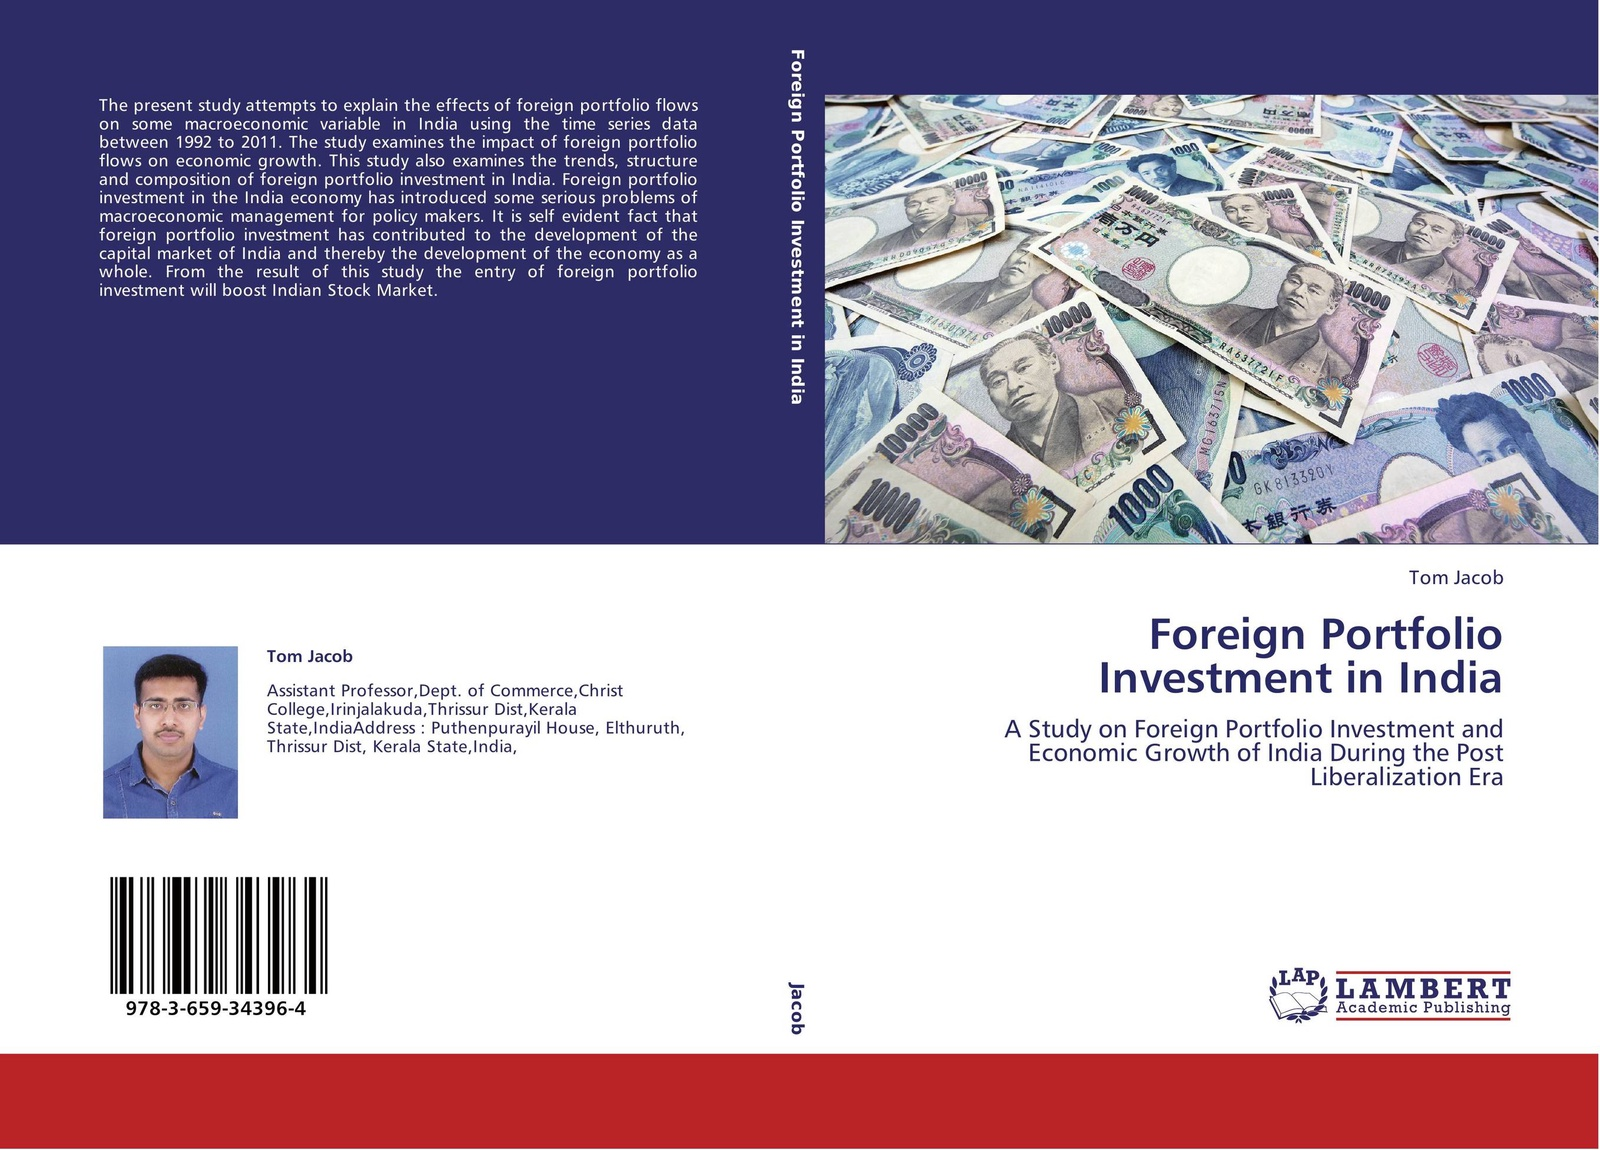 Tom Jacob Foreign Portfolio Investment in India greg fedorinchik investment leadership and portfolio management the path to successful stewardship for investment firms